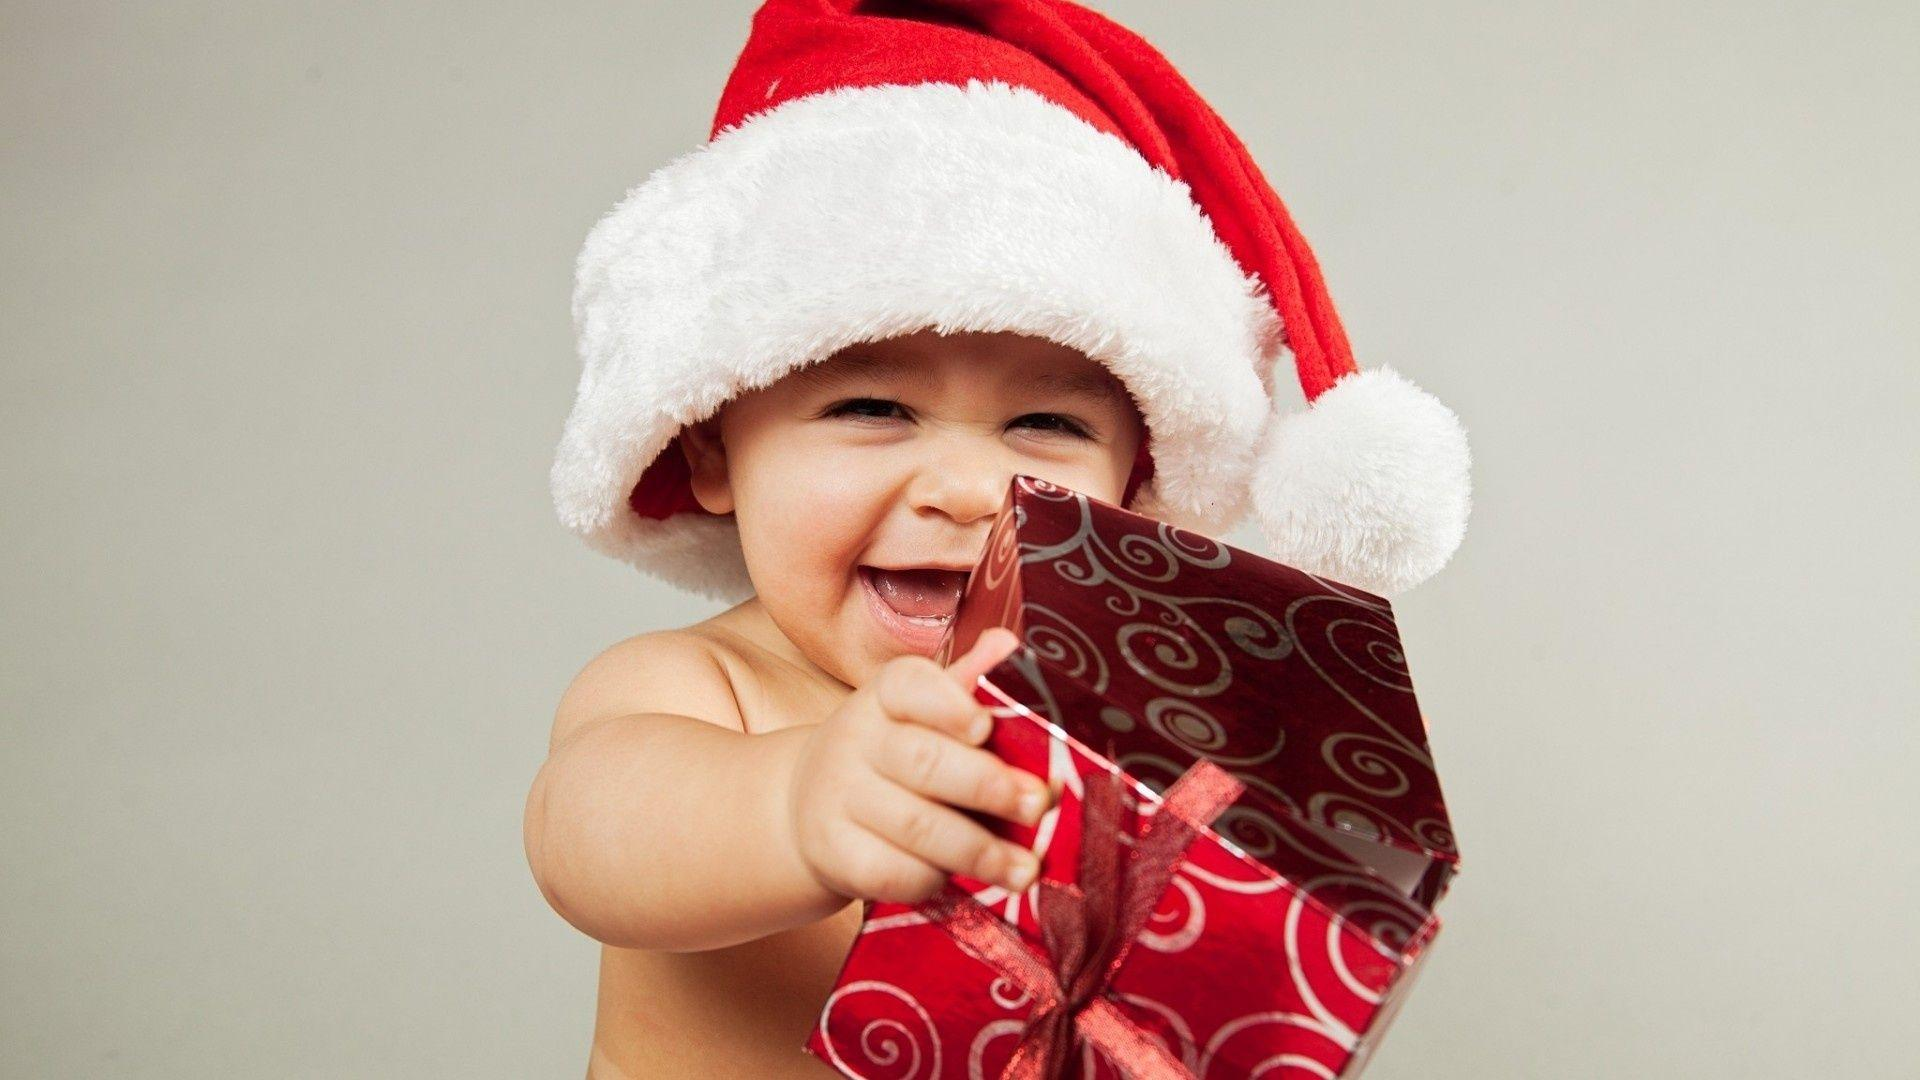 Wallpapers Cute Baby Download Group